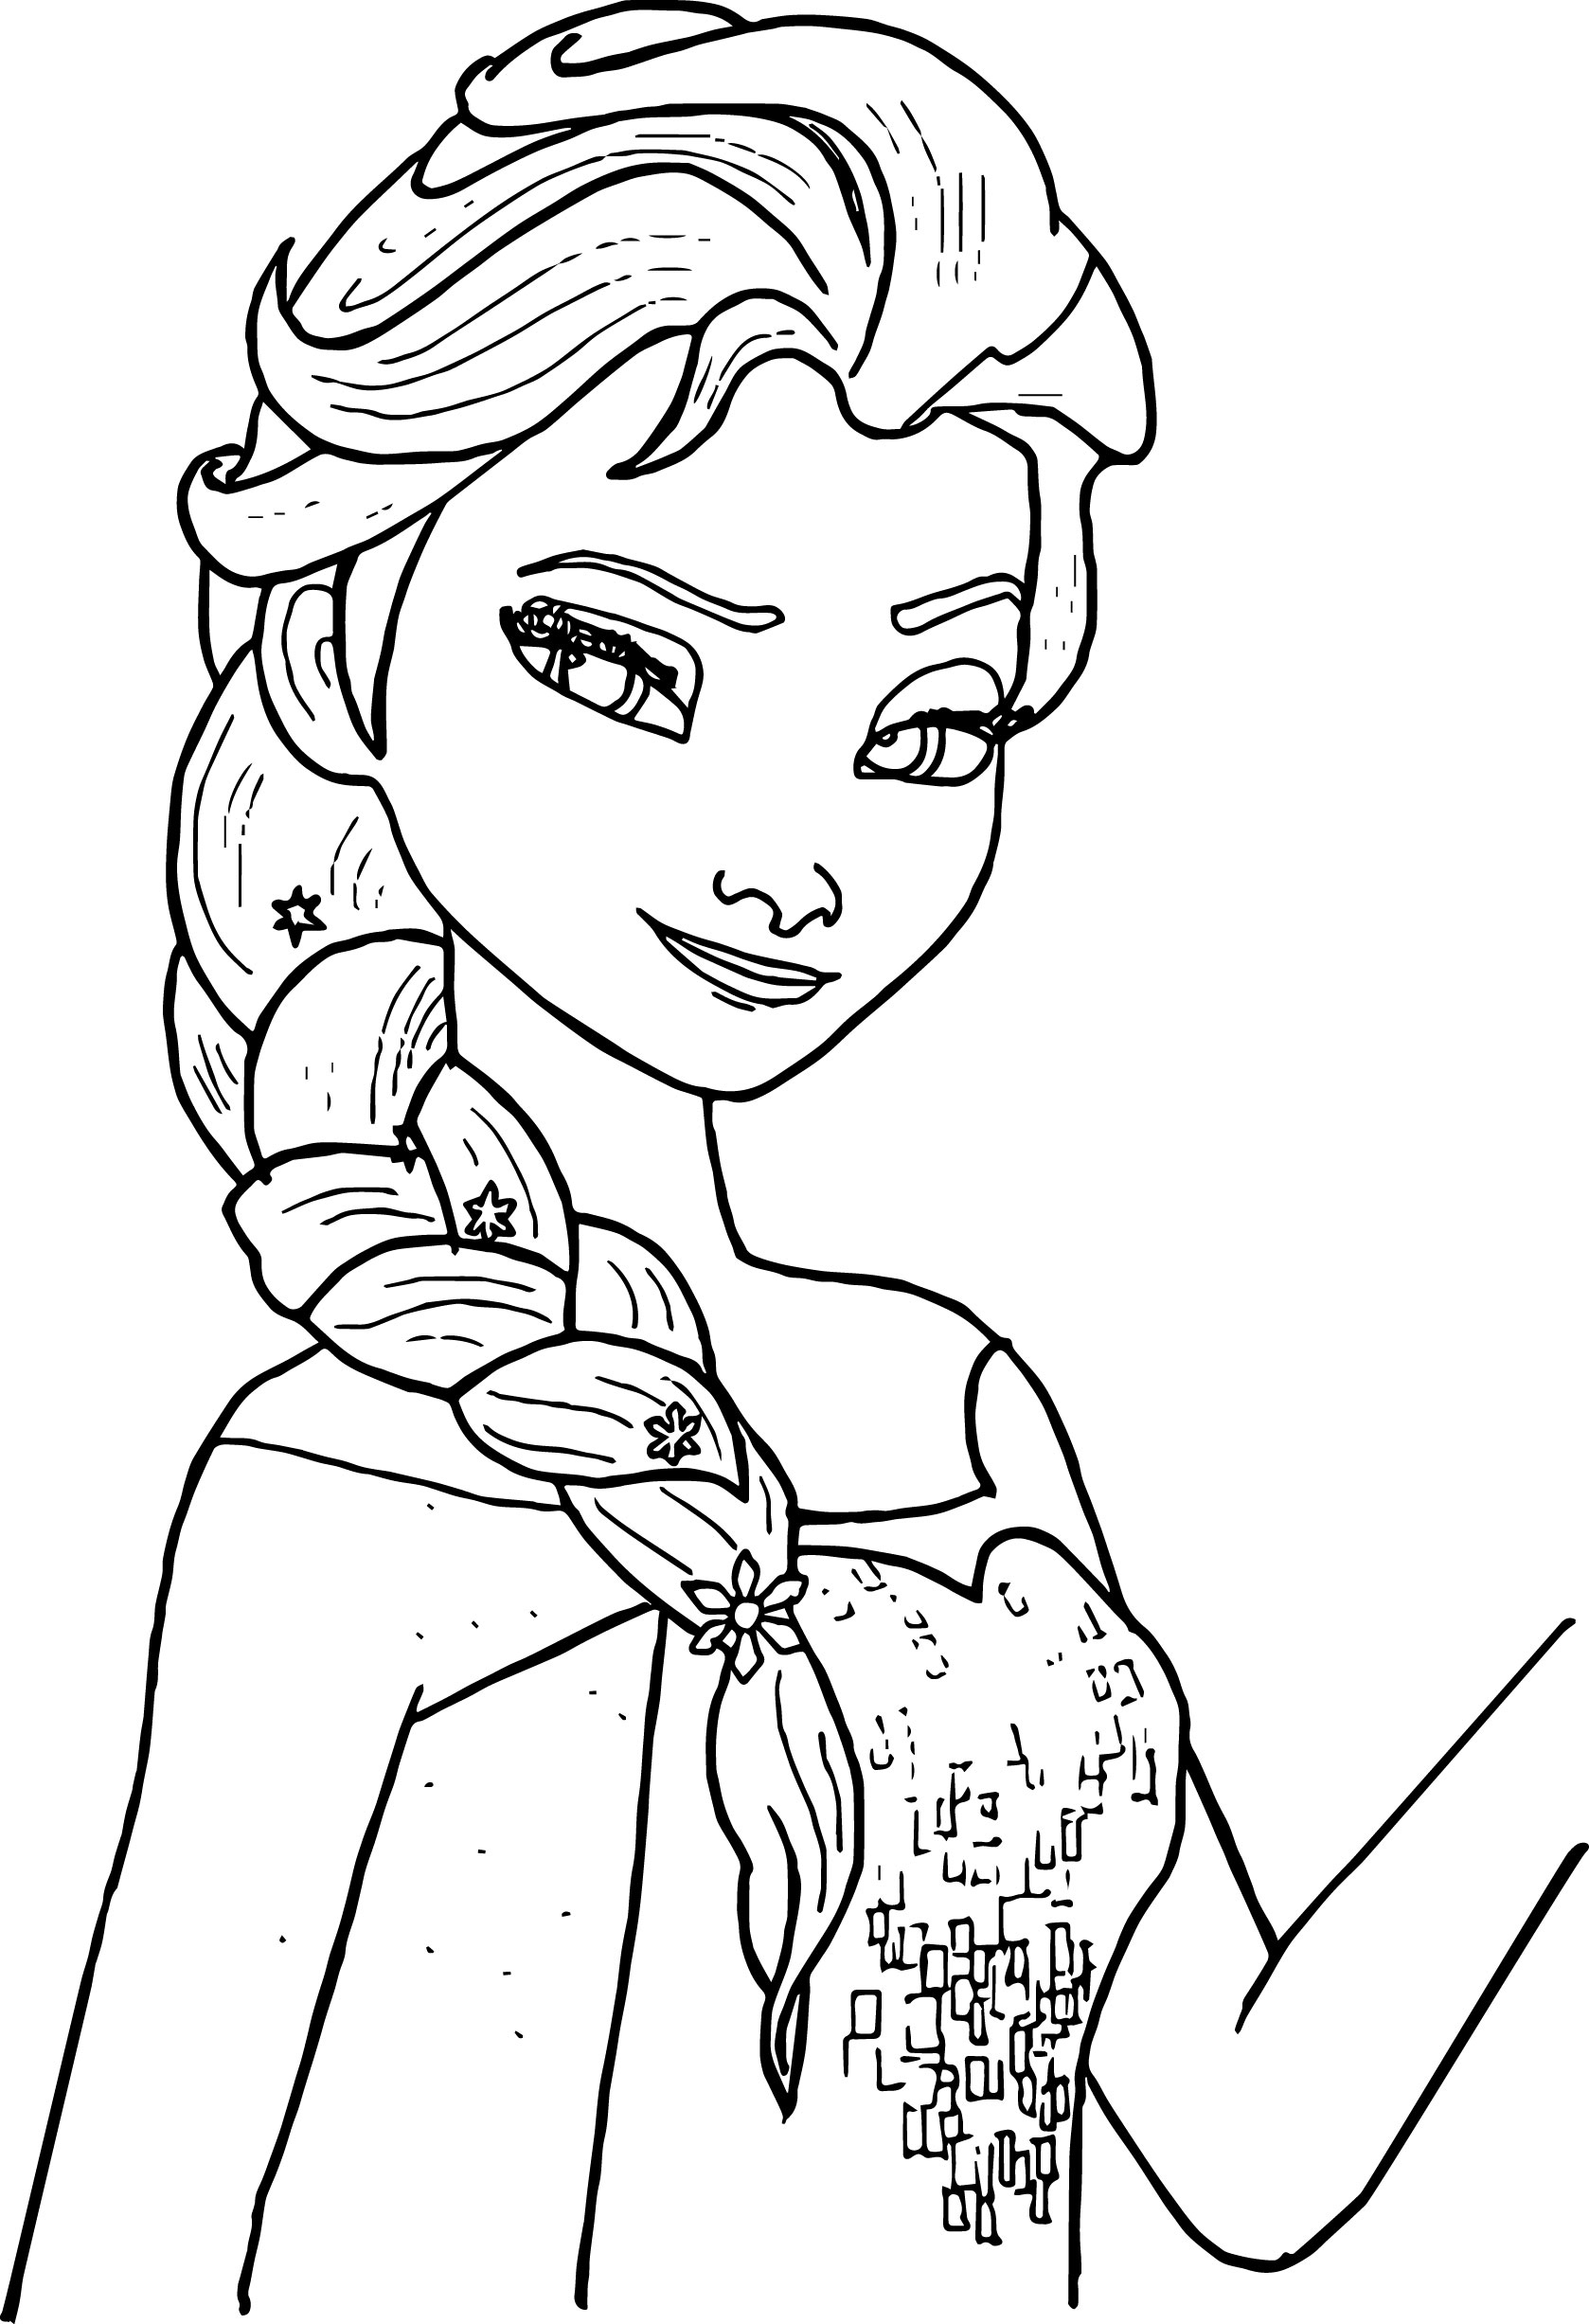 Free Elsa Frozen Coloring Pages At Getcolorings